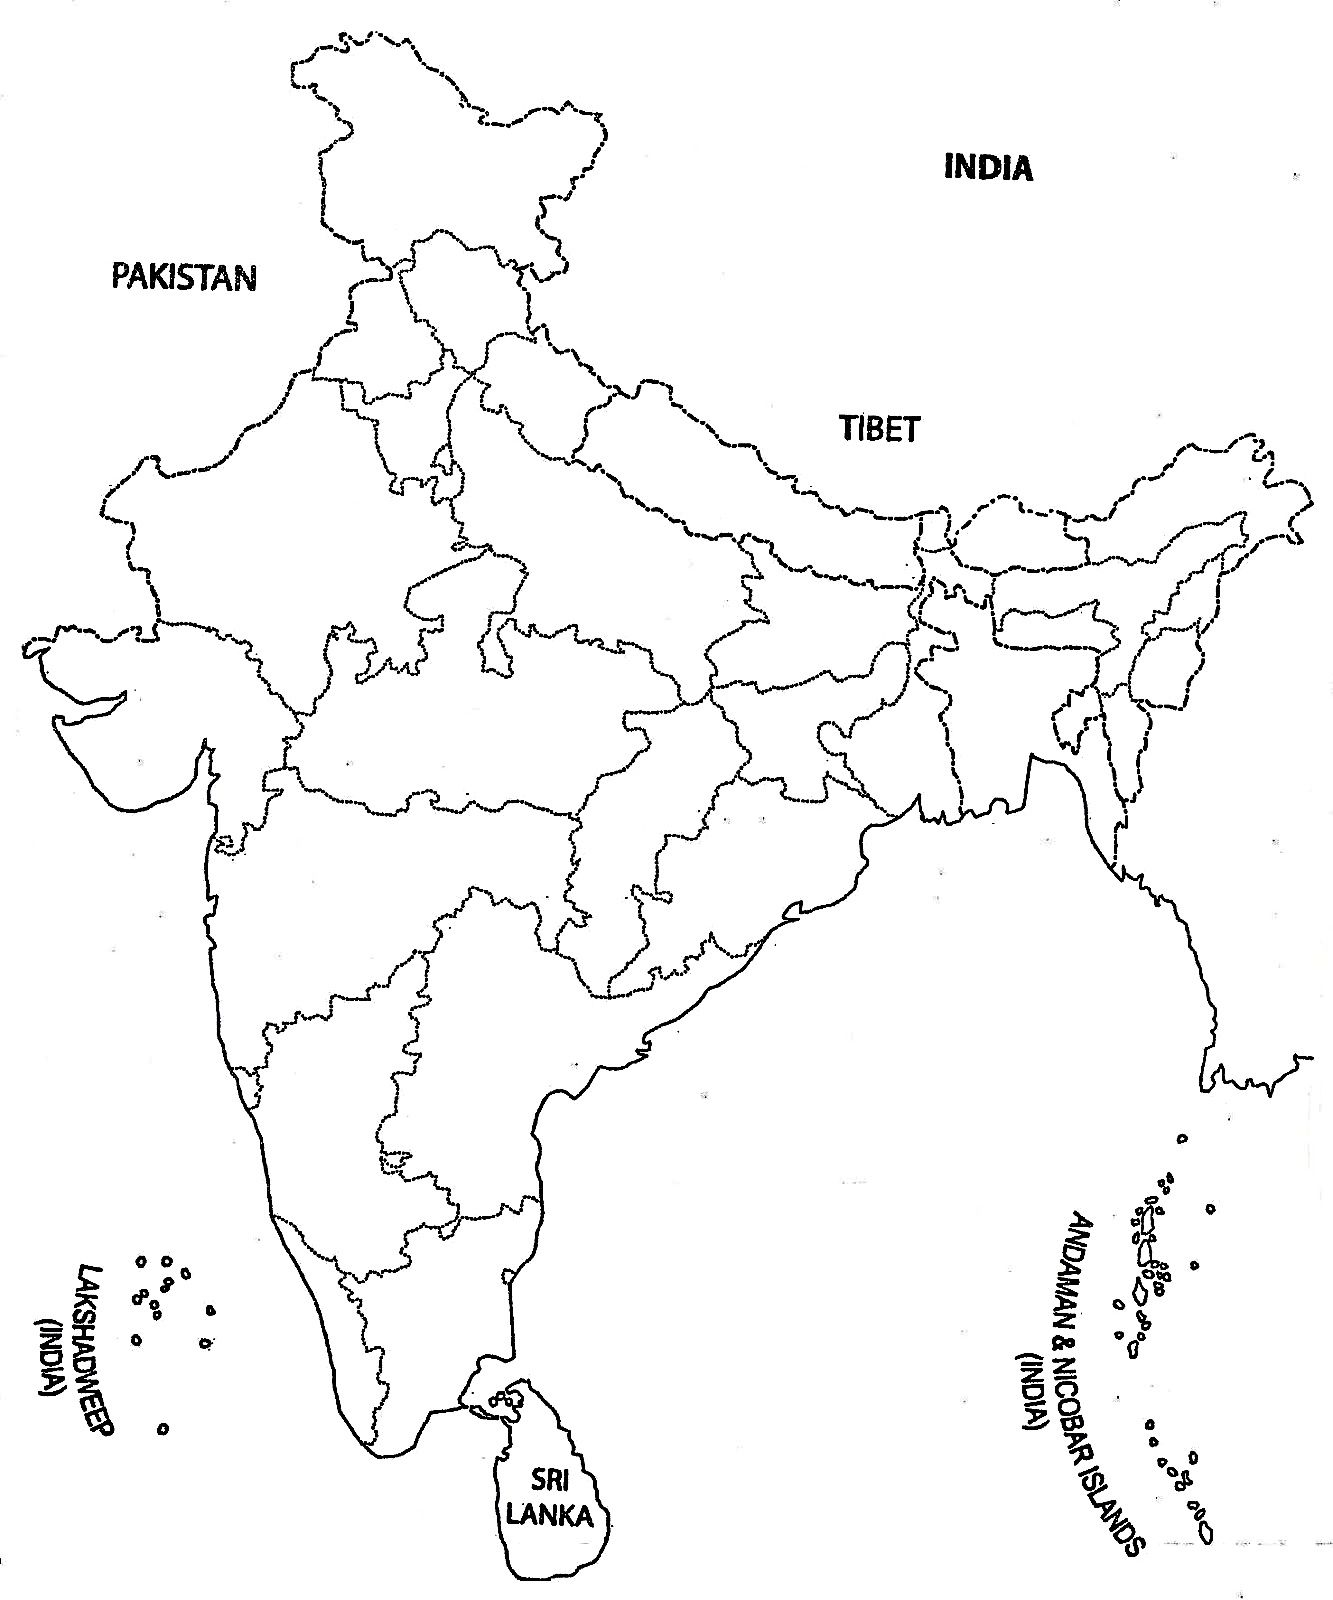 Outline Of India Map india map outline a4 size | Map of India With States | India map